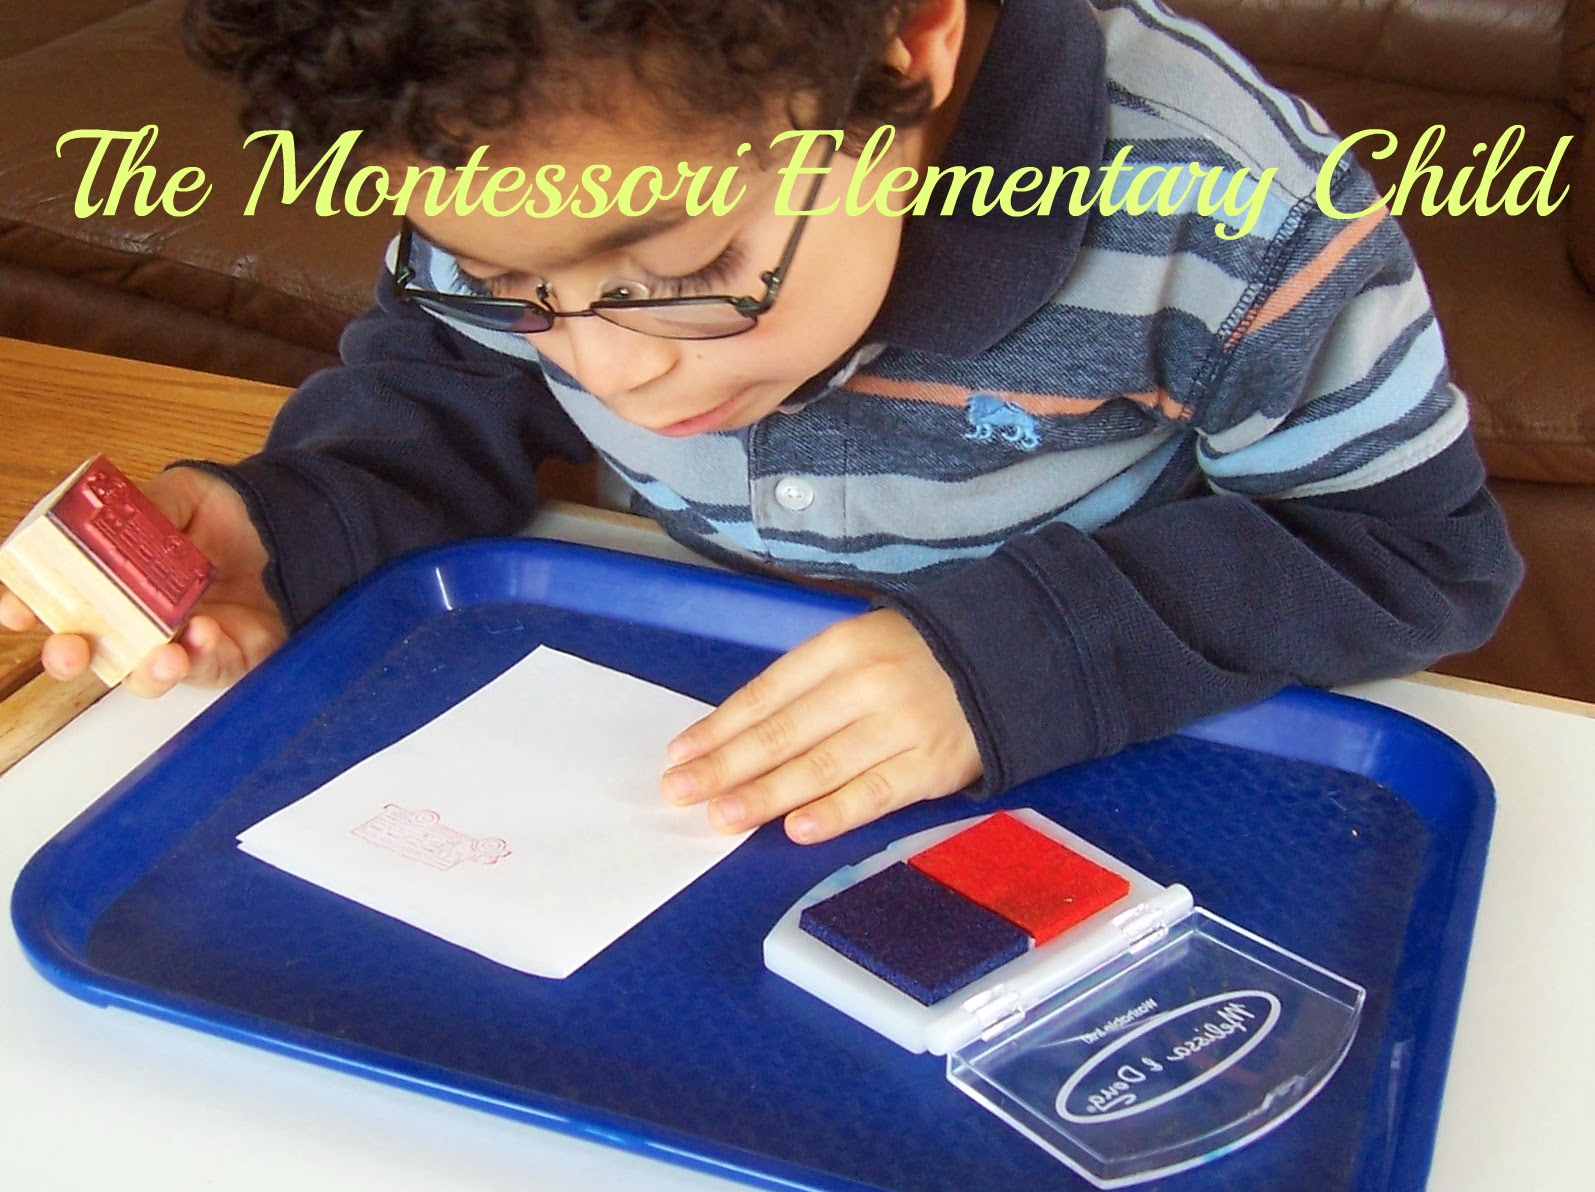 The Montessori Elementary Child by Lisa Nolan at Confessions of a Montessori Mom blog